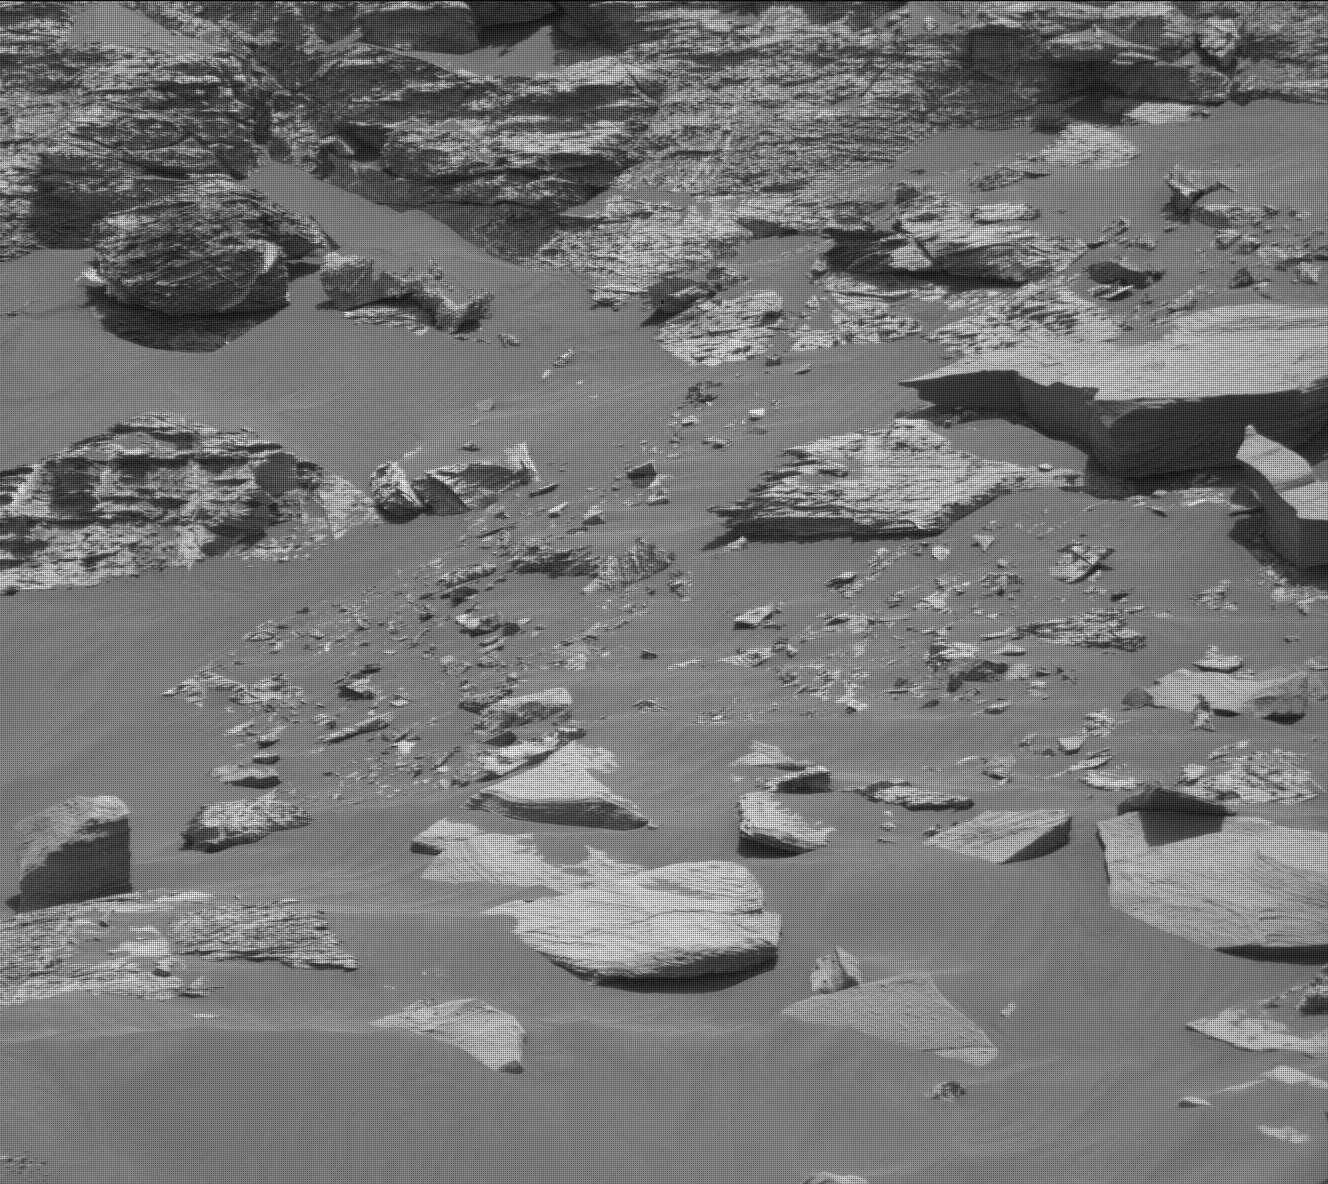 Nasa's Mars rover Curiosity acquired this image using its Mast Camera (Mastcam) on Sol 2751